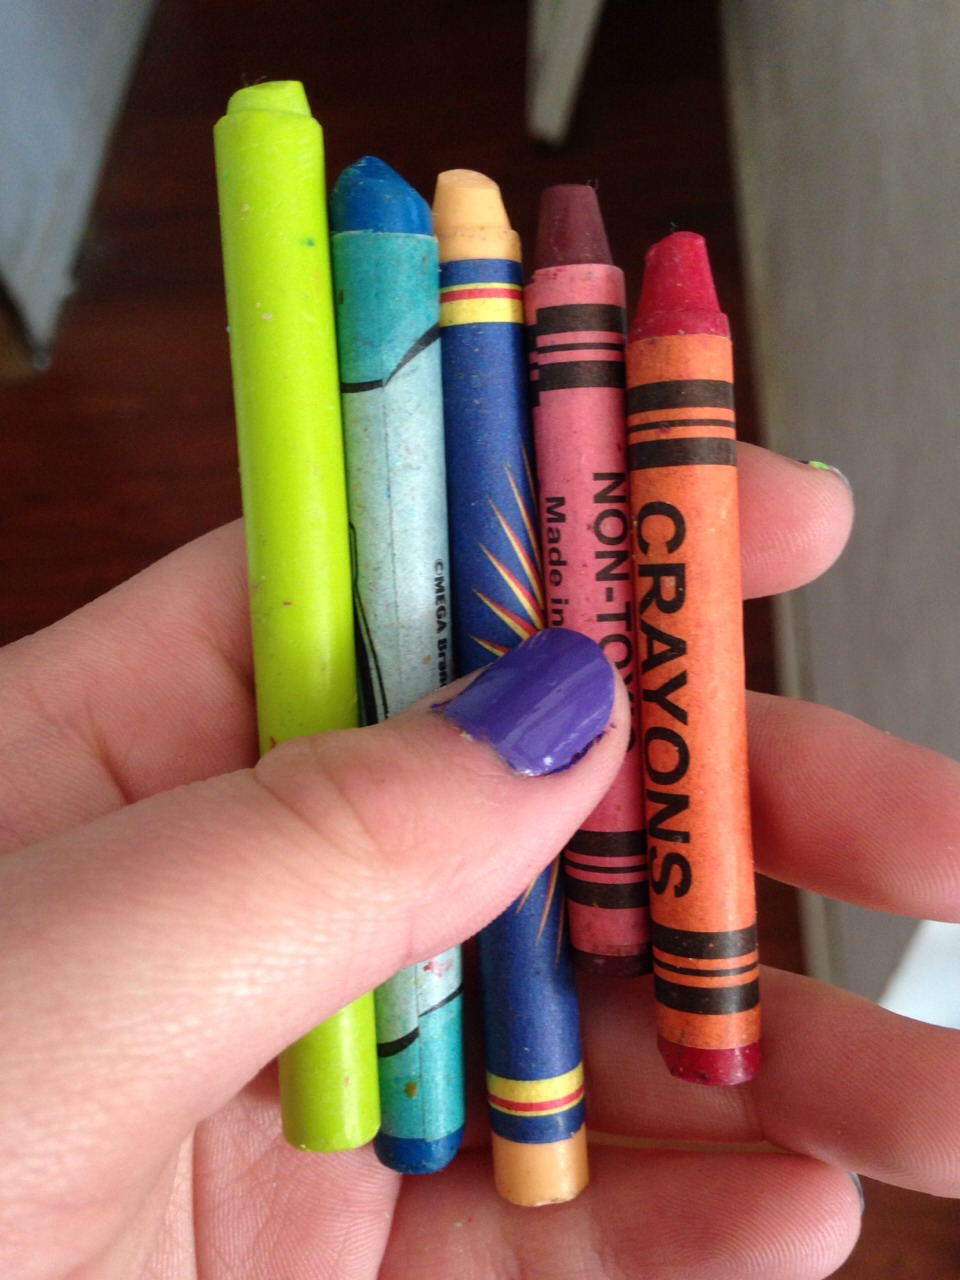 •get the color of crayons that you want